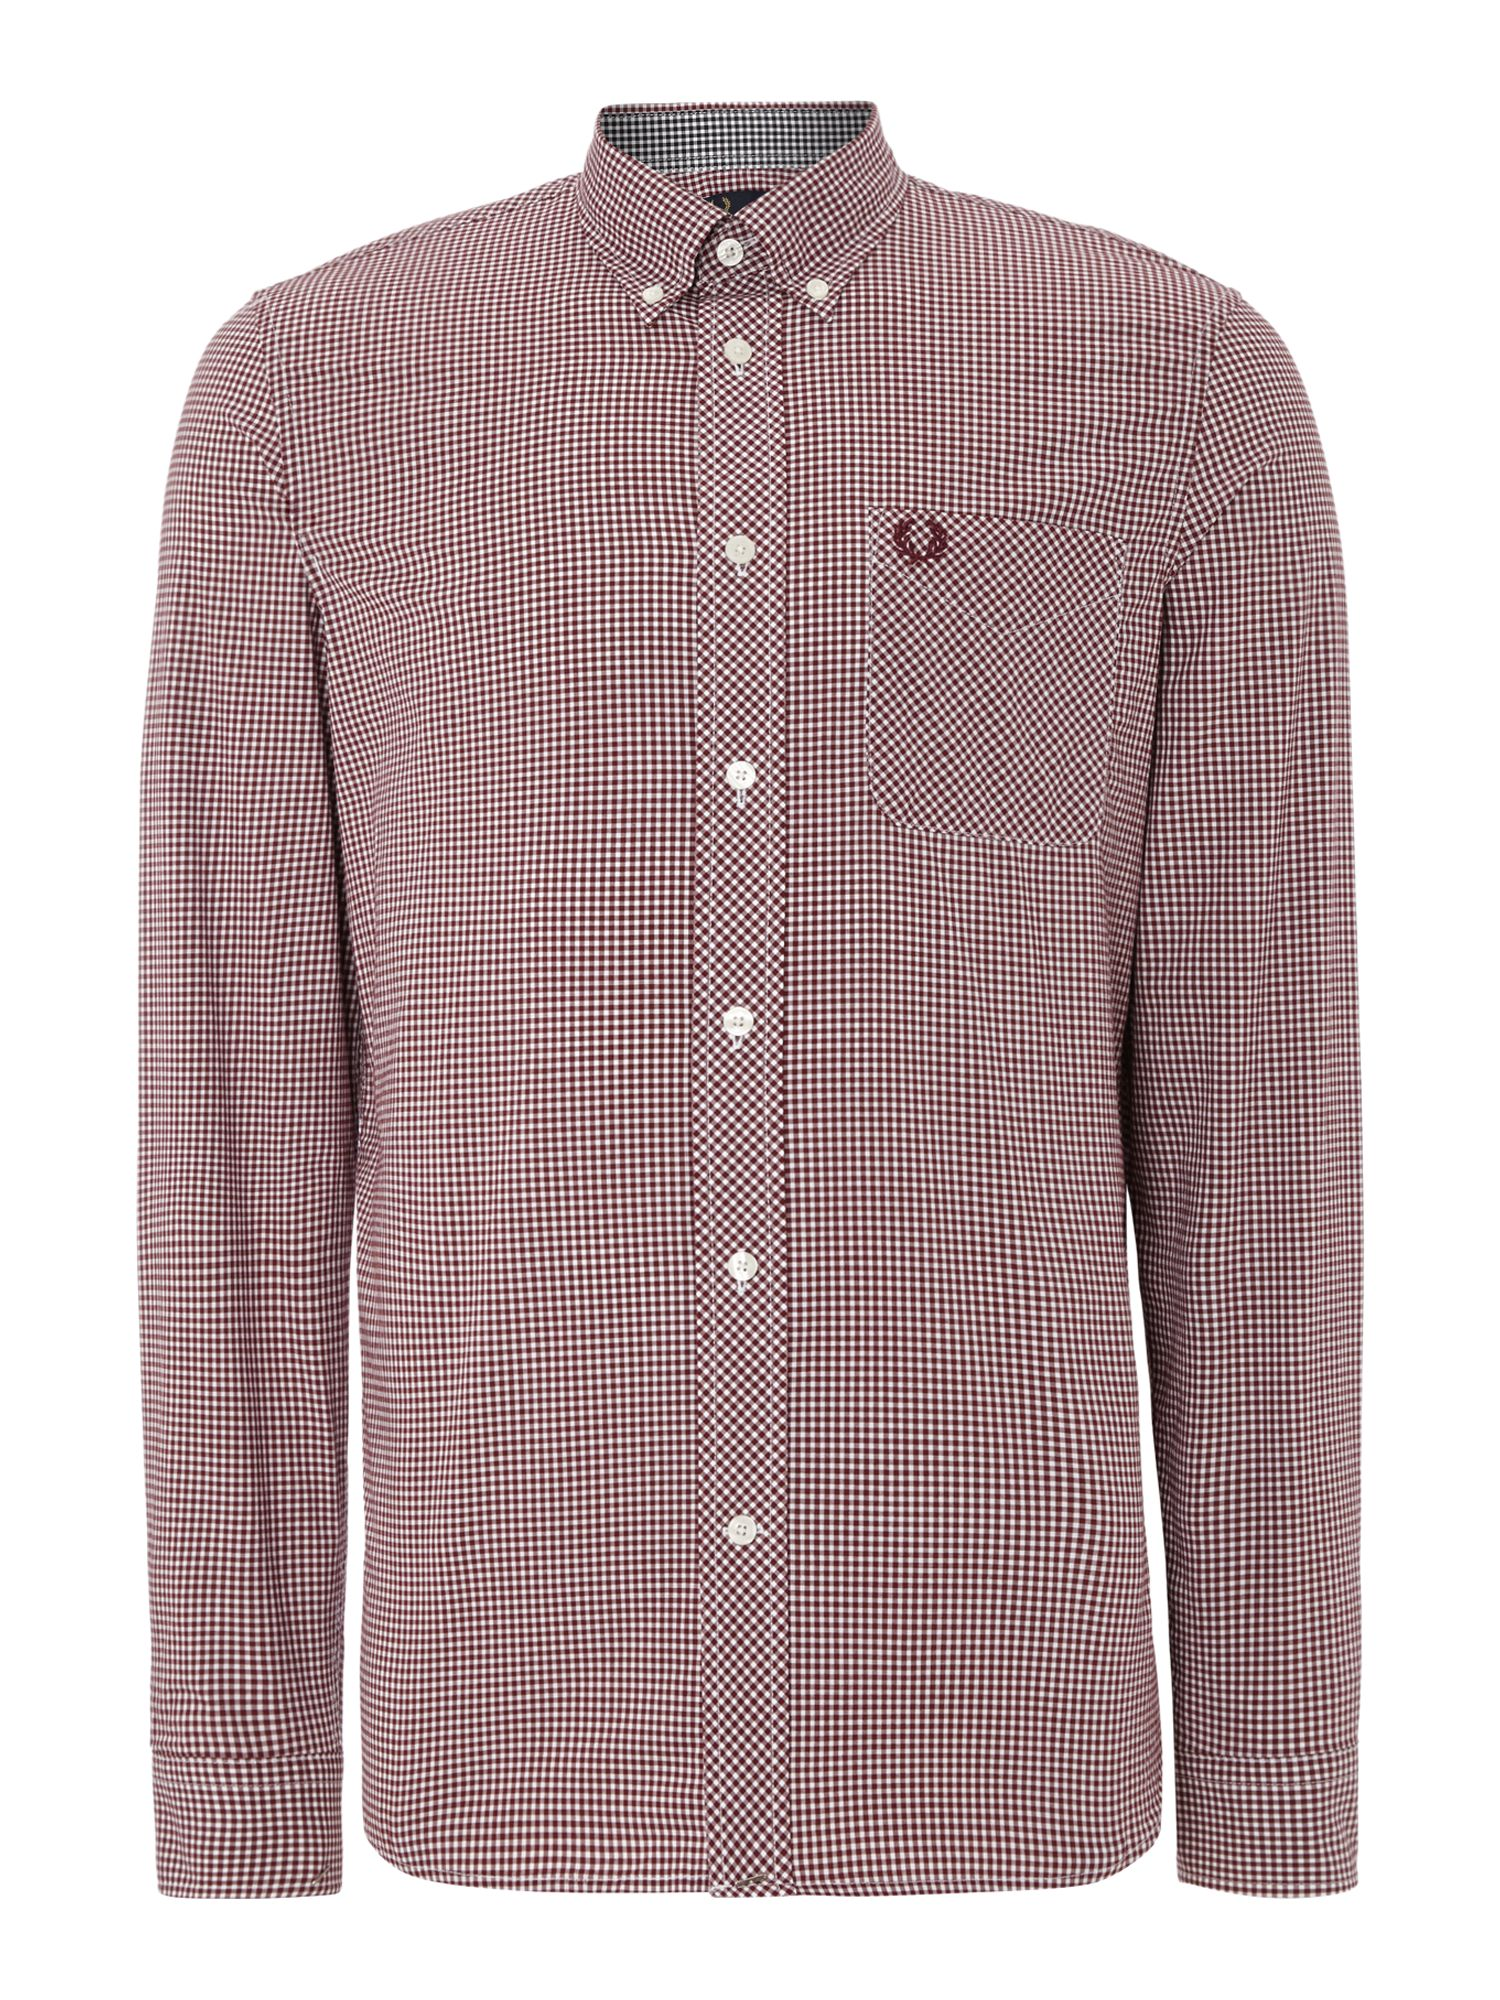 Mens Fred Perry Gingham Classic Fit Long Sleeve Shirt Mahogany